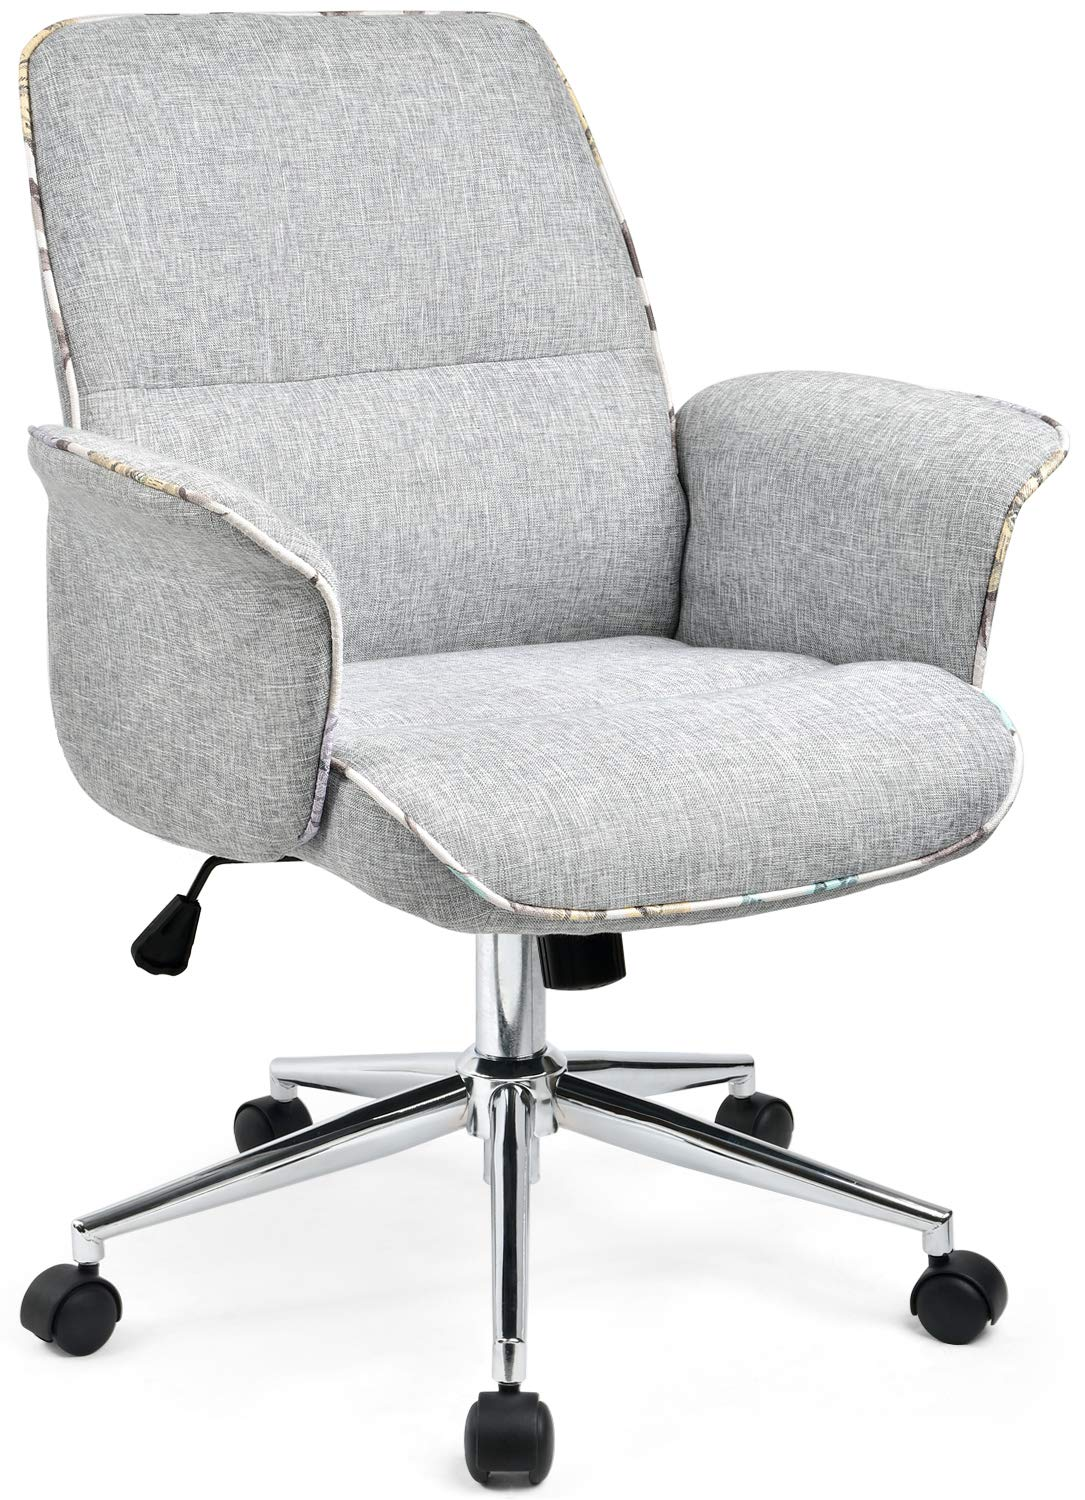 Sensational Comhoma Home Office Desk Chair Modern Fabric Upholstered Adjustable Mid Back Ergonomic Executive Conference Chair Grey Download Free Architecture Designs Intelgarnamadebymaigaardcom